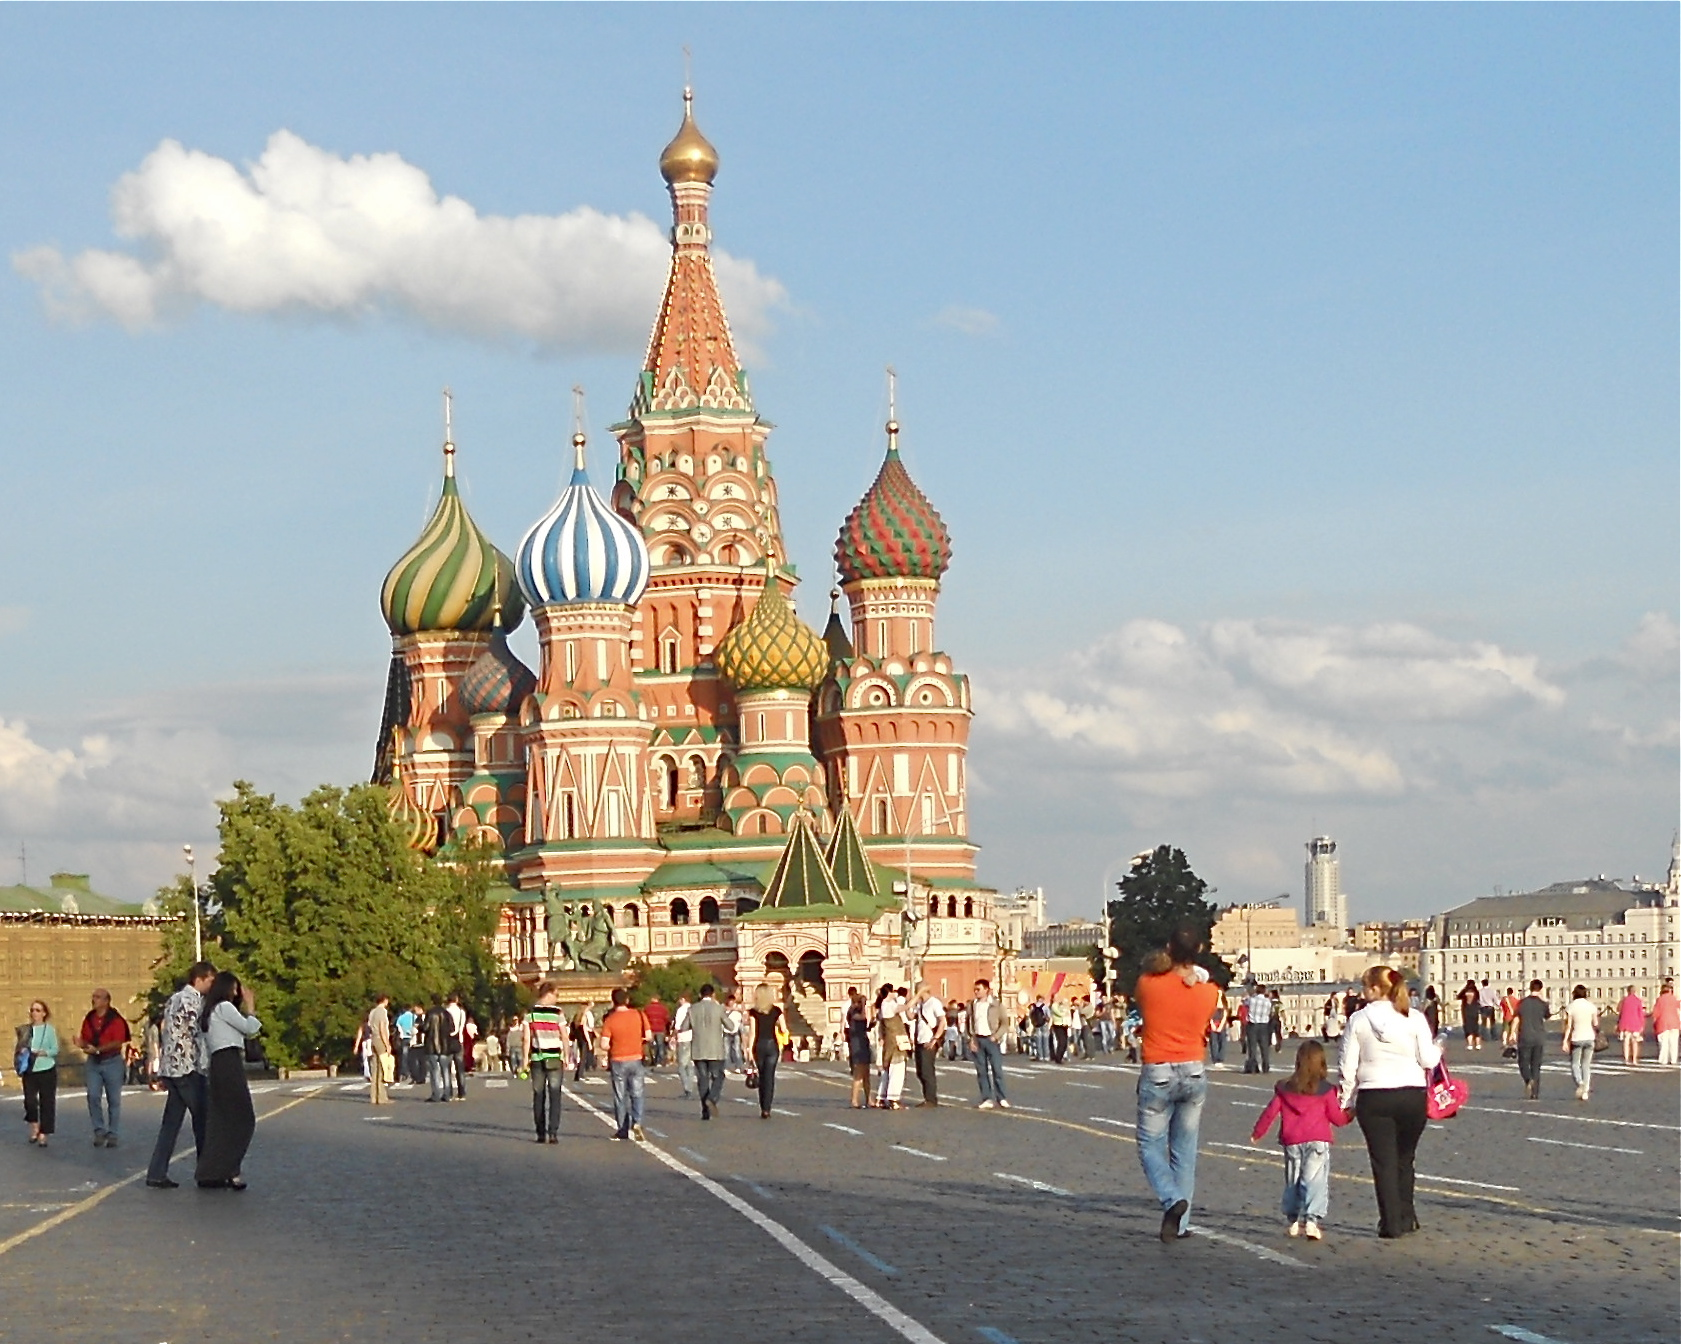 File:St. Basil\u0027s Cathedral Moscow, Russia.jpg - Wikimedia Commons